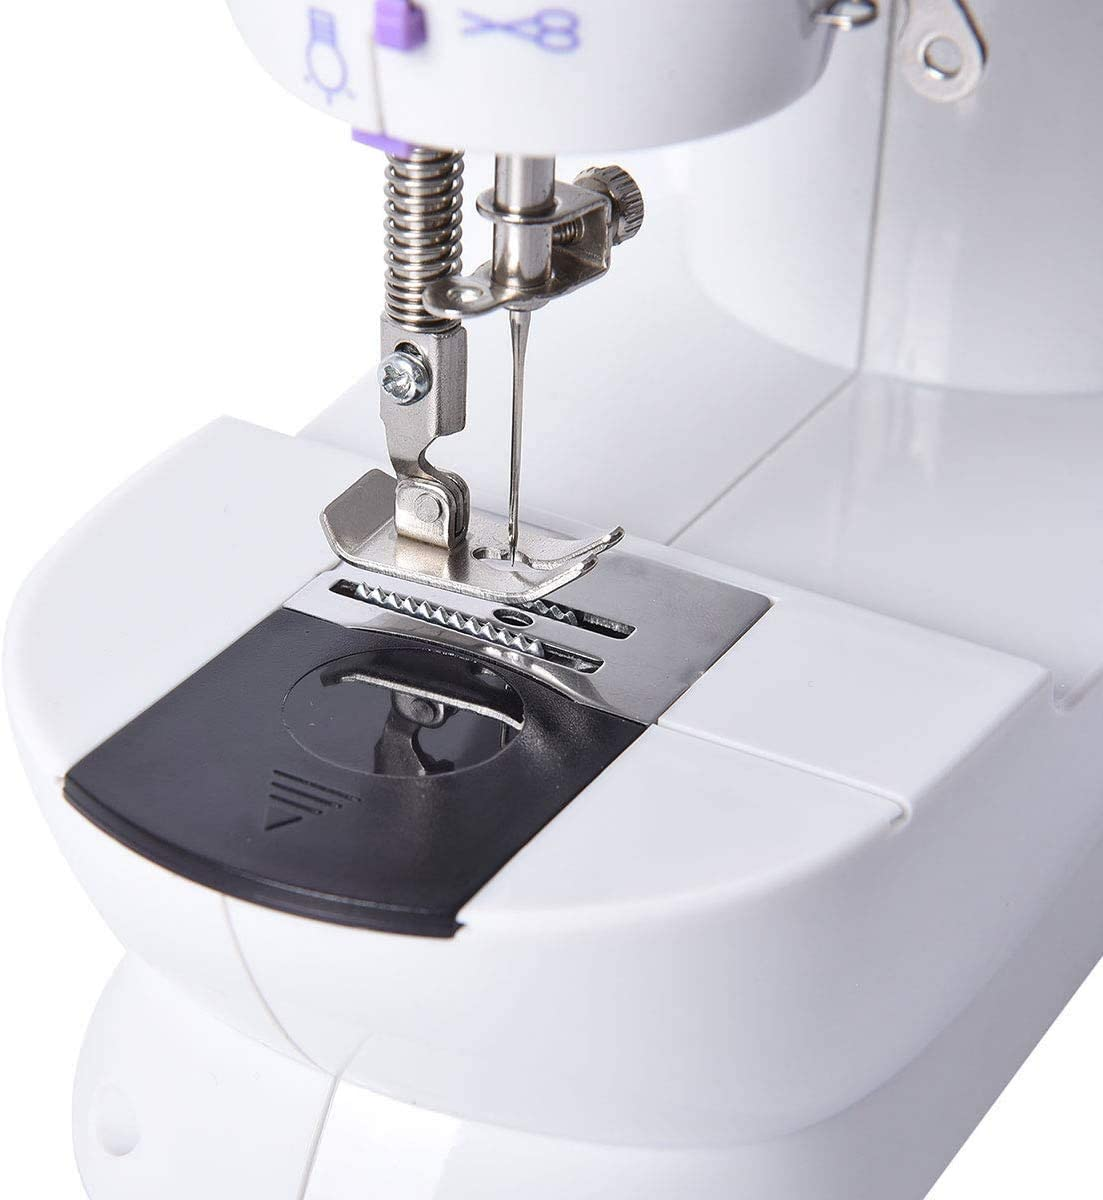 Mini Portable Sewing Machine Small Electric Crafting Mending Machine  2-Speed Double Thread with Foot Pedal for Household Kids Beginner Sewing  Machines evertribehq Arts, Crafts & Sewing